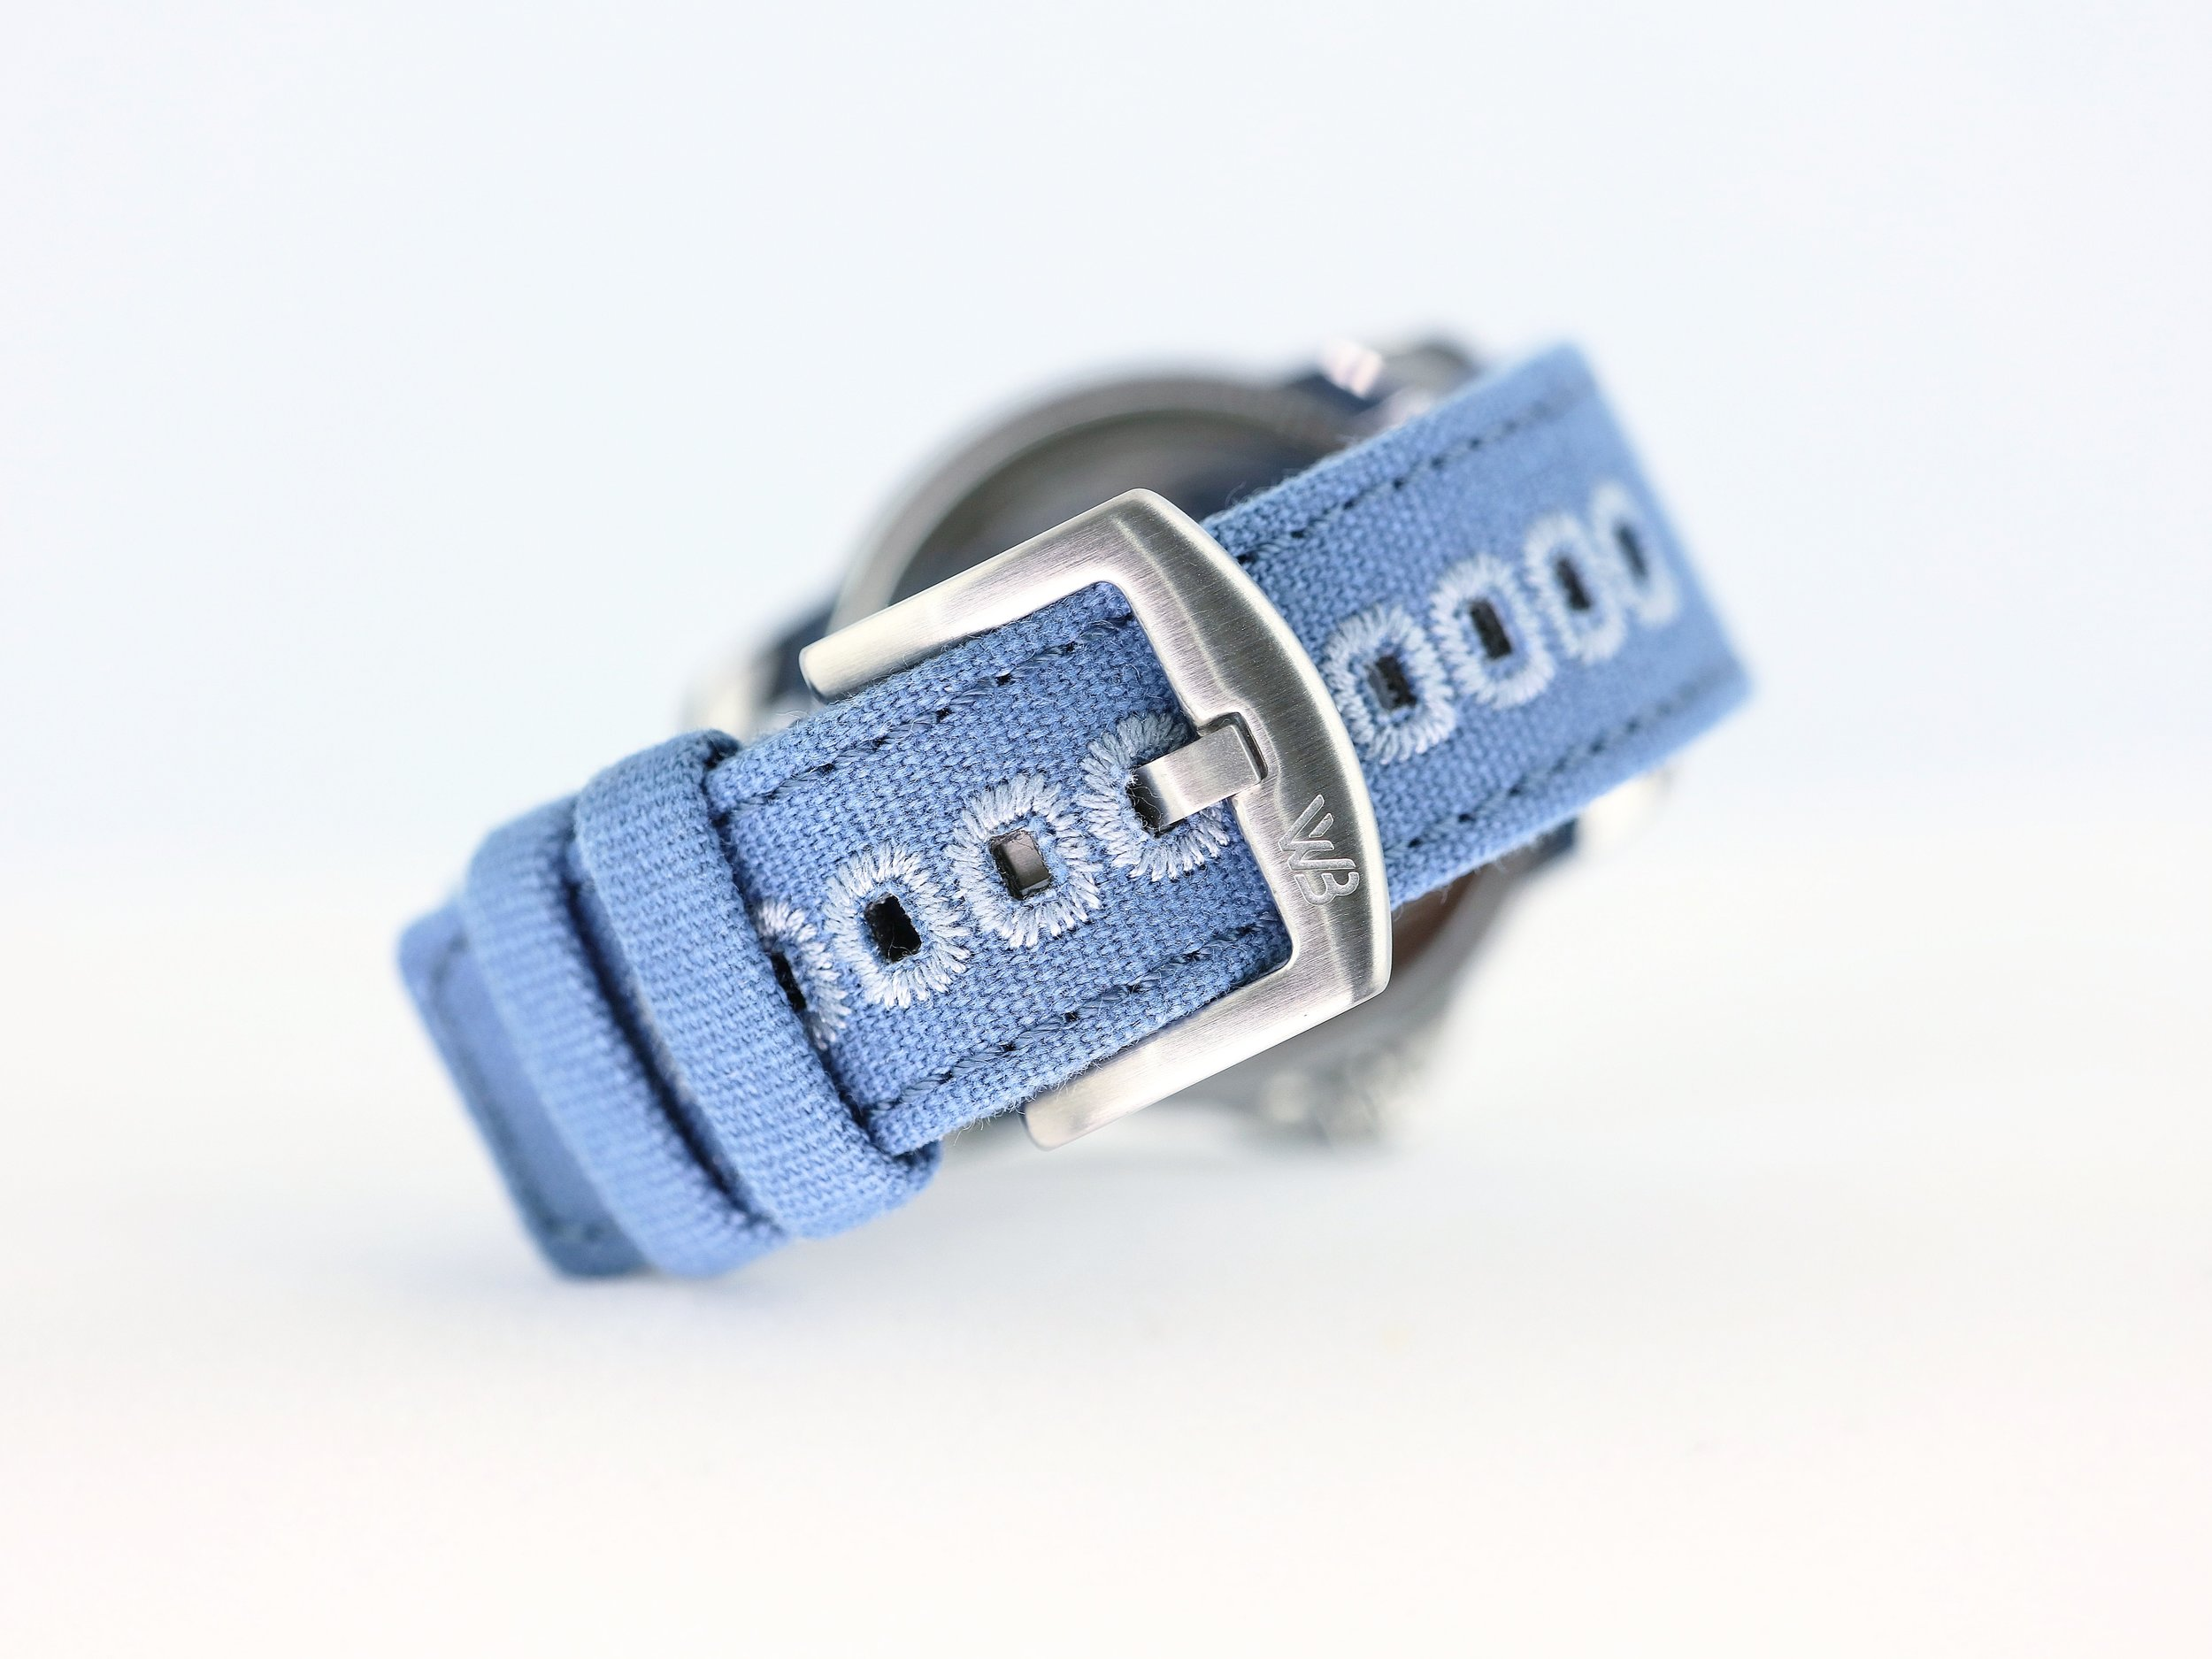 The blue canvas strap from Watchbandit.